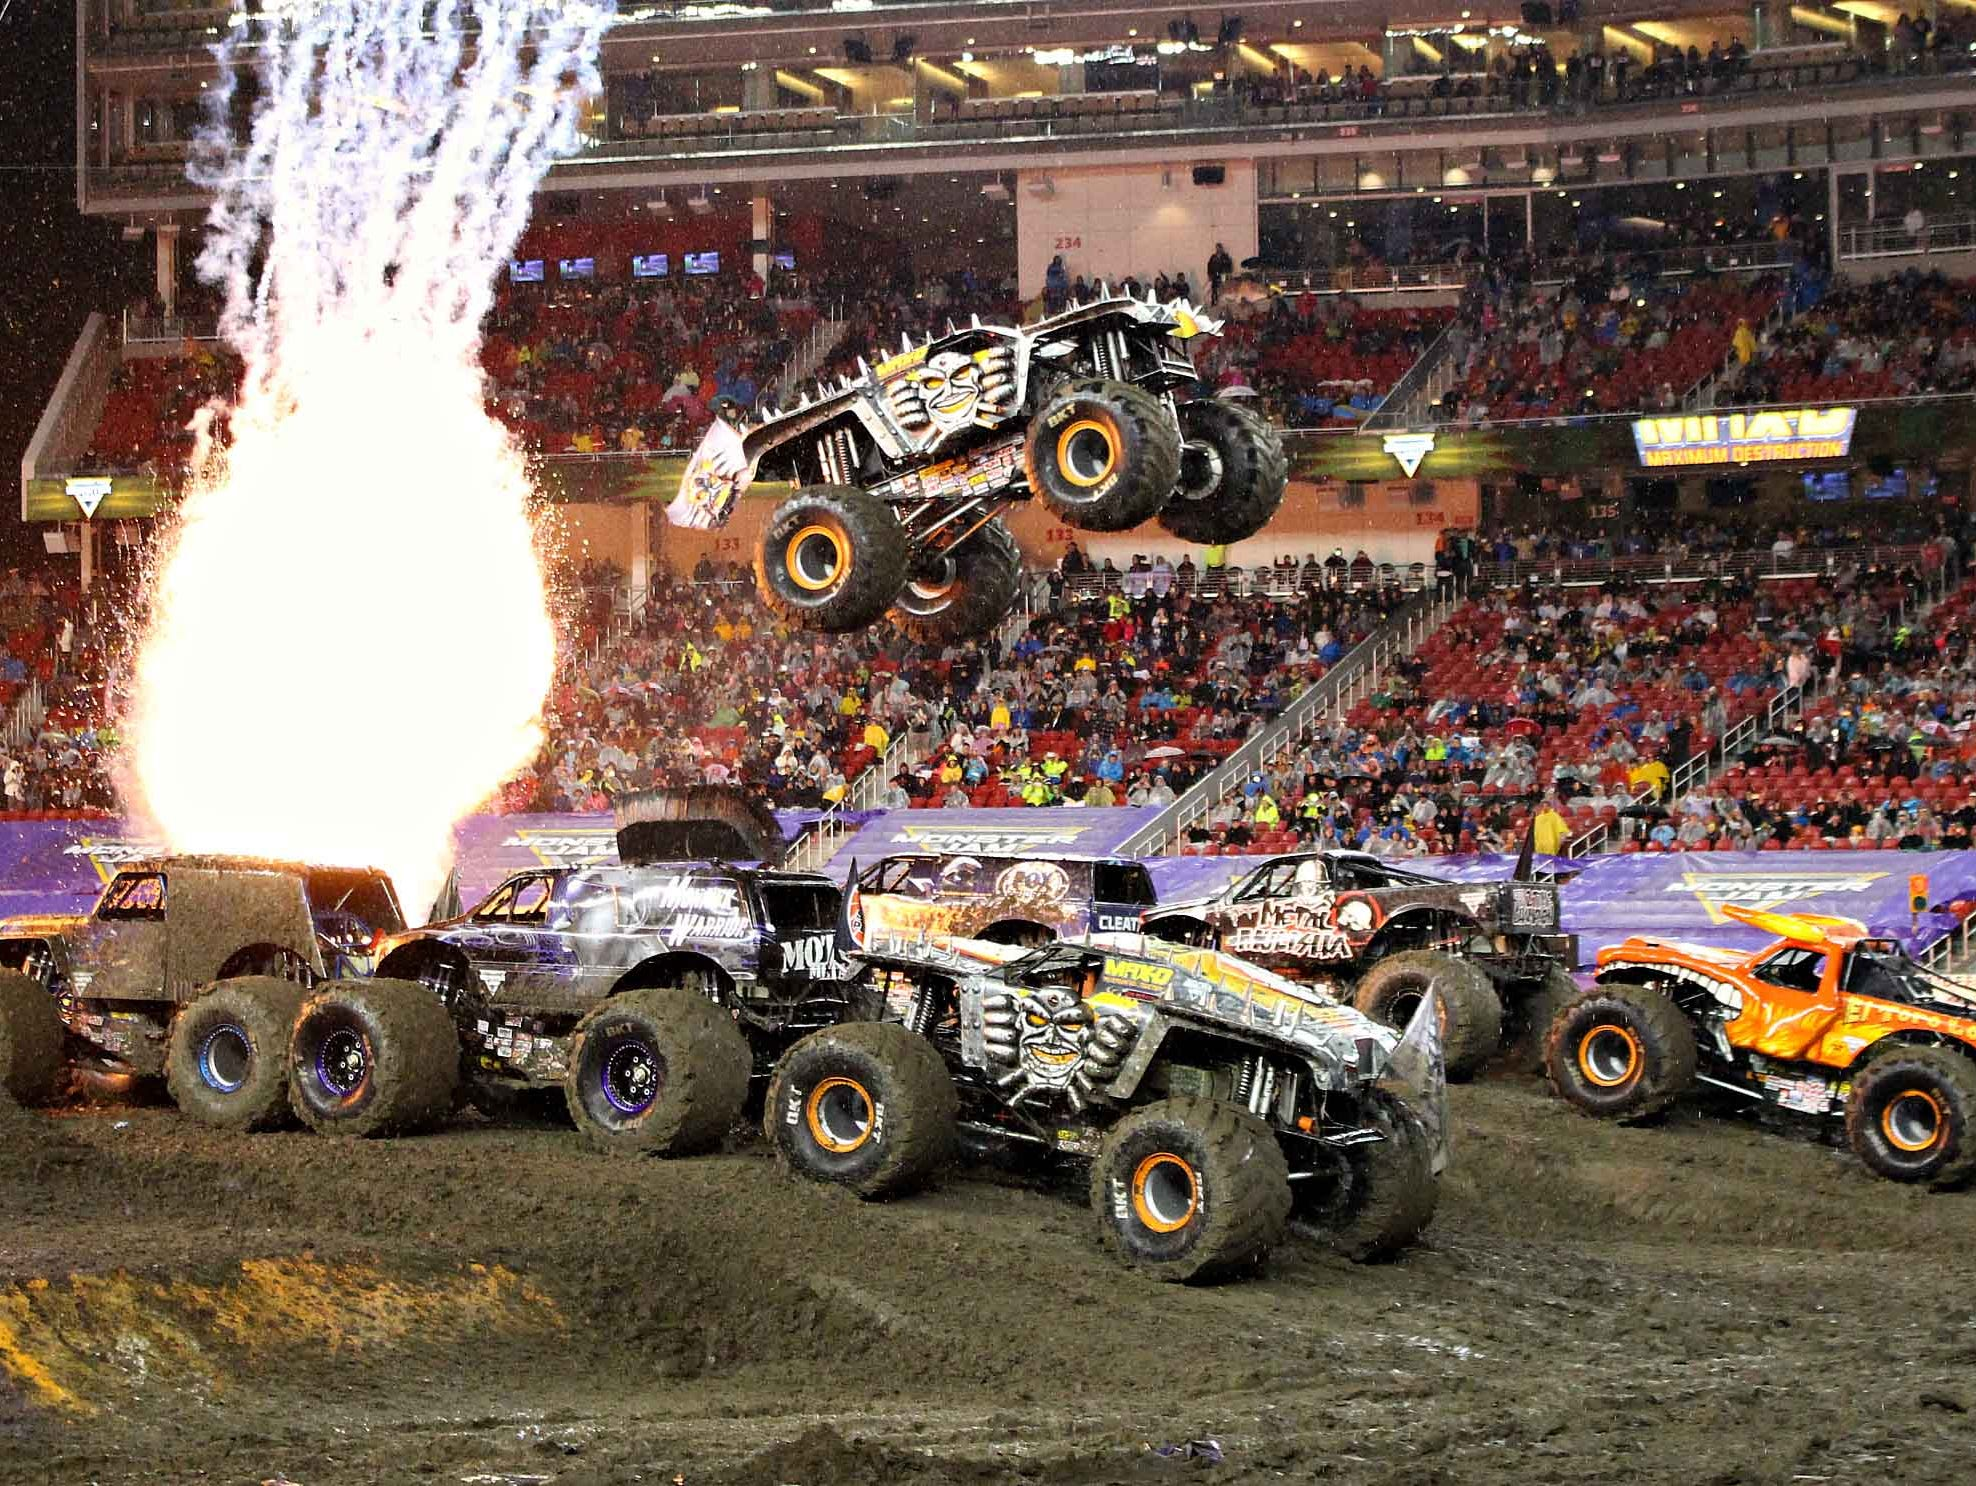 Purchase discounted tickets to Monster Jam at Nissan Stadium on June 24th.